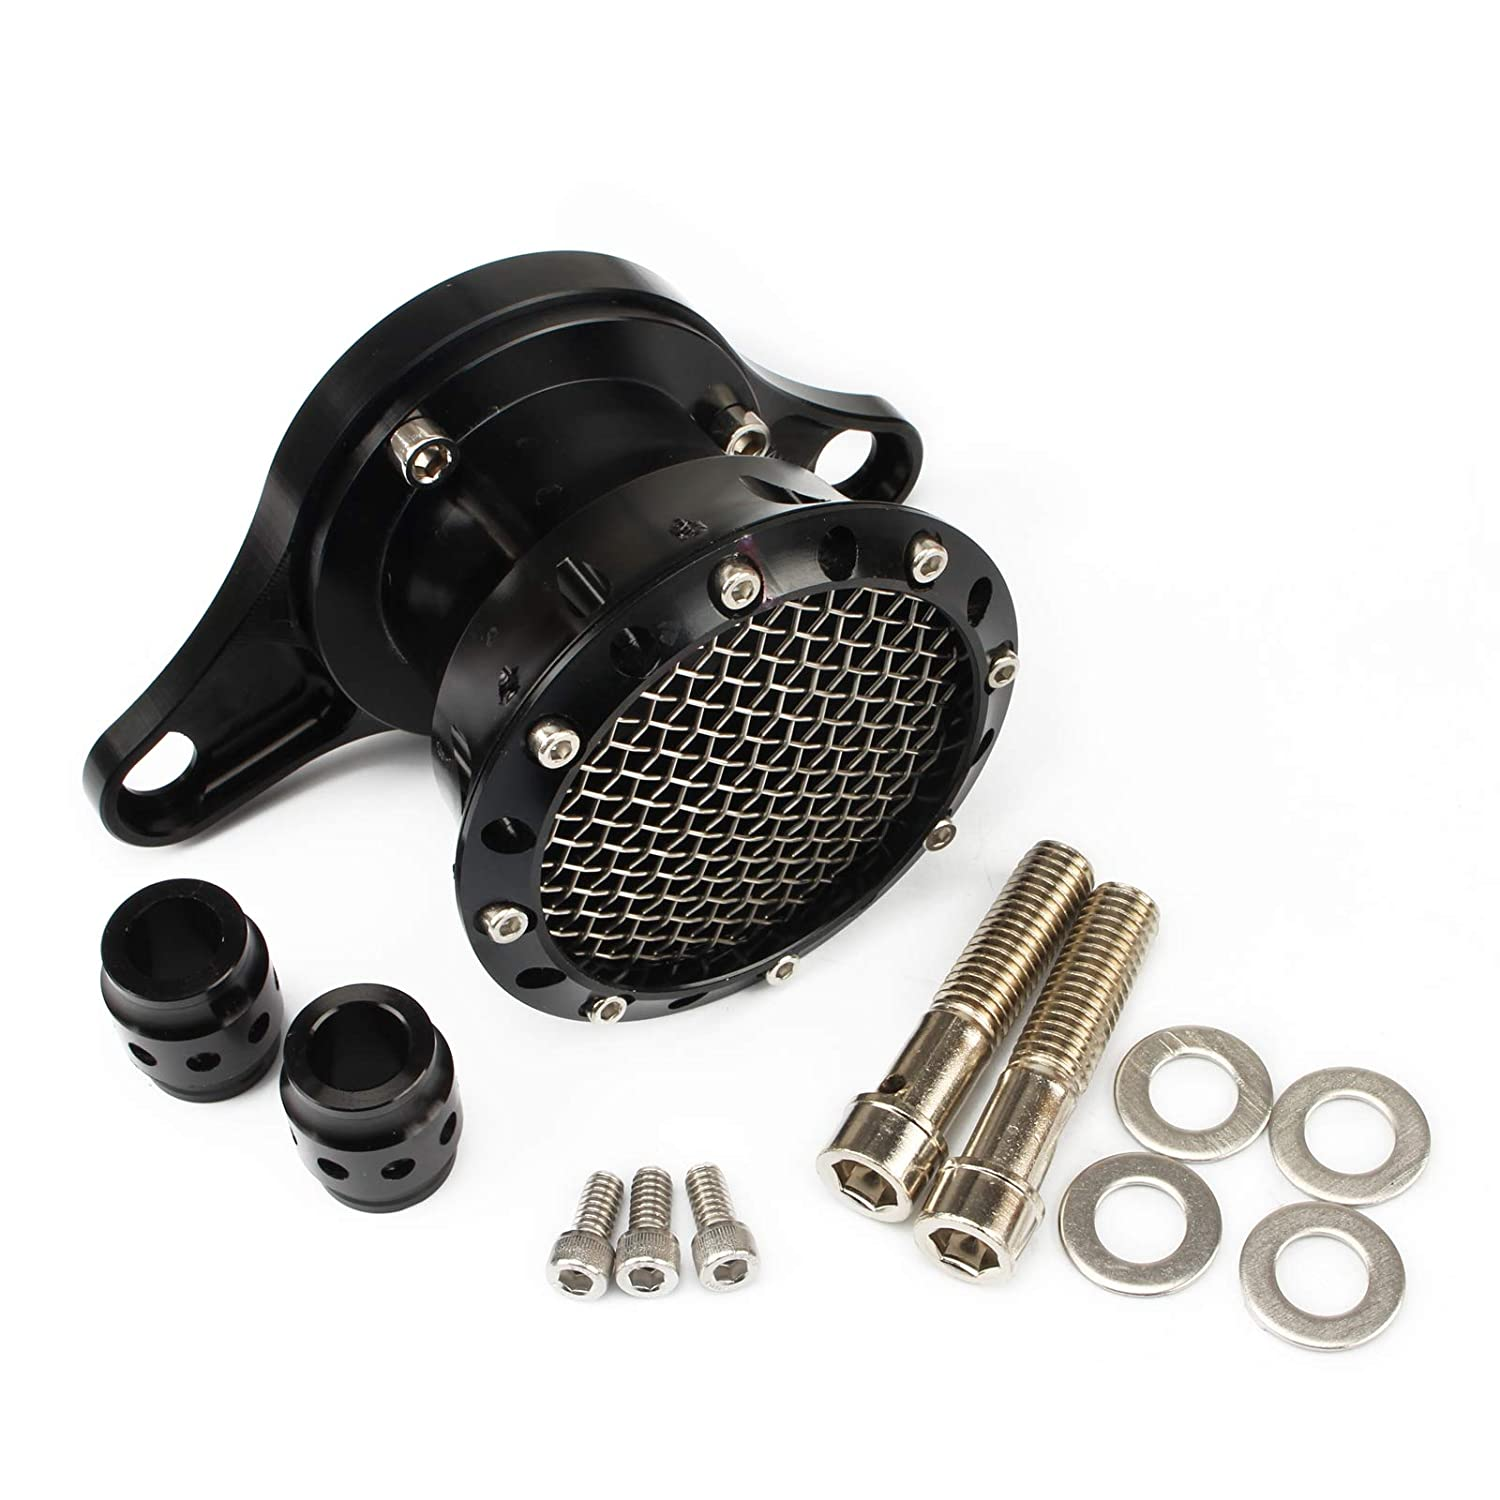 Air Cleaner Intake Filter System Kit Black Velocity Stack For Sportster Iron 883 XL883 XL1200 Forty Eight Seventy Two